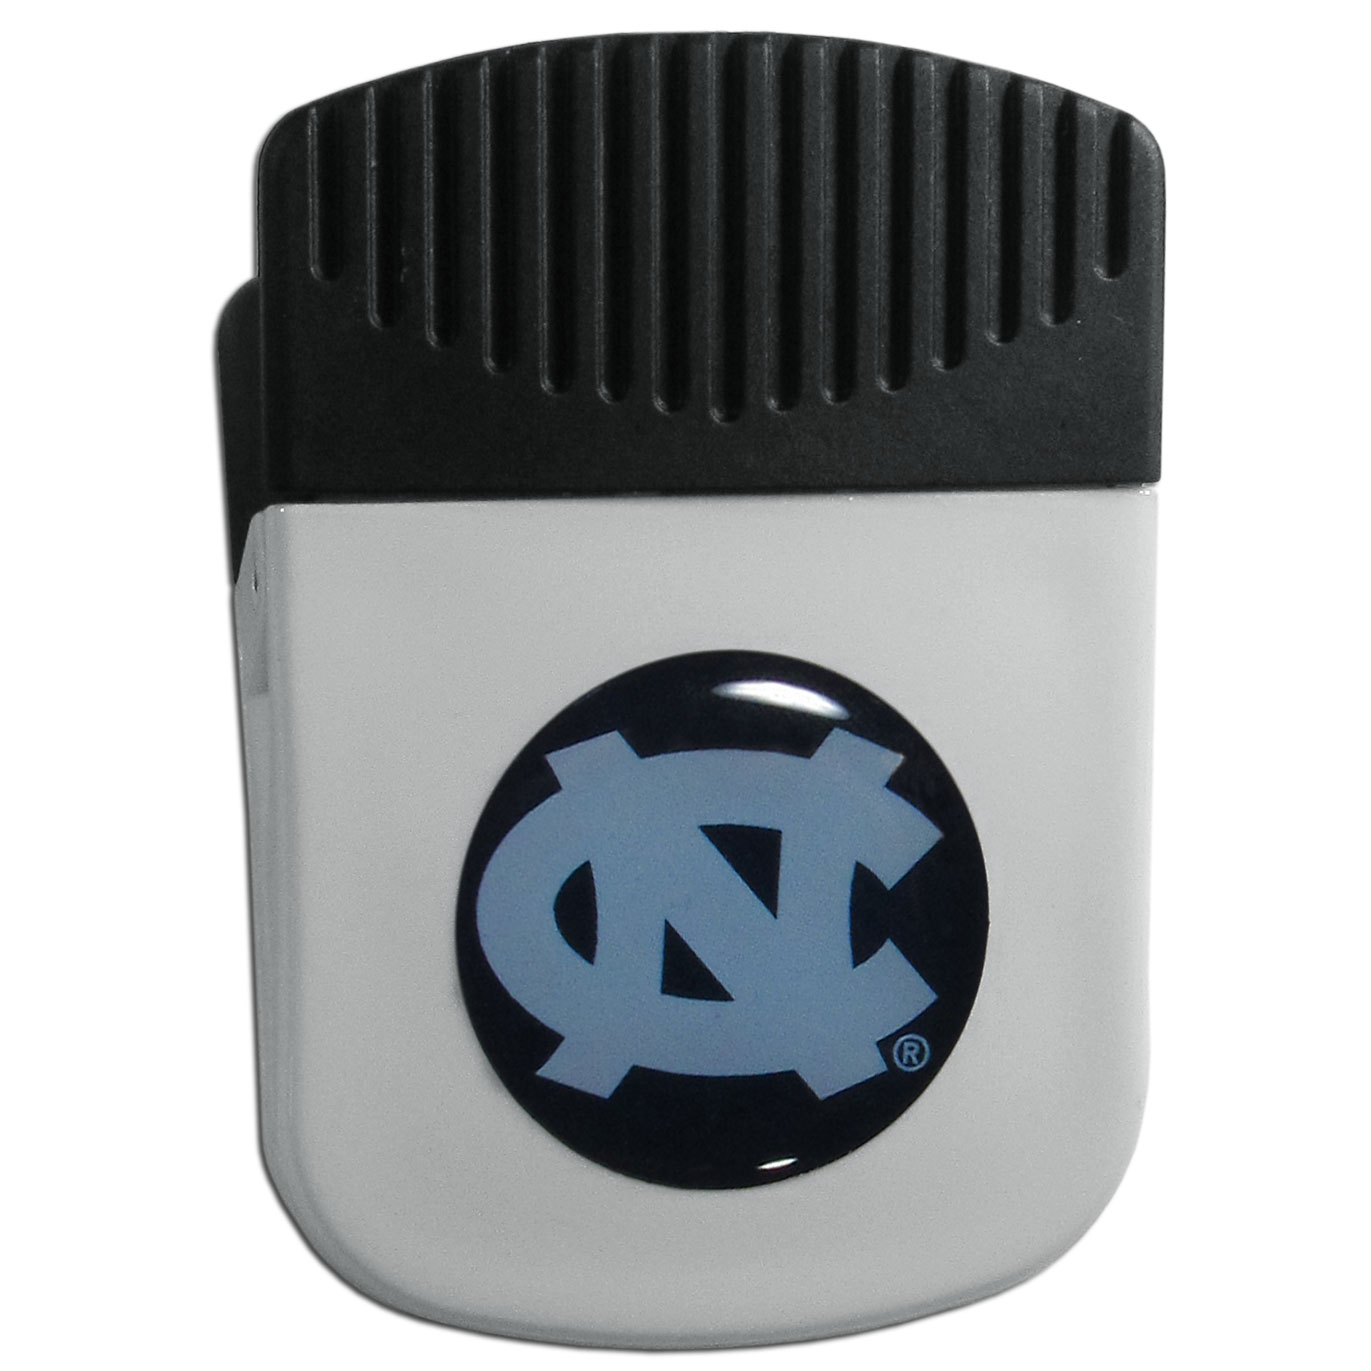 N. Carolina Tar Heels Chip Clip Magnet - Use this attractive clip magnet to hold memos, photos or appointment cards on the fridge or take it down keep use it to clip bags shut. The magnet features a domed N. Carolina Tar Heels logo.